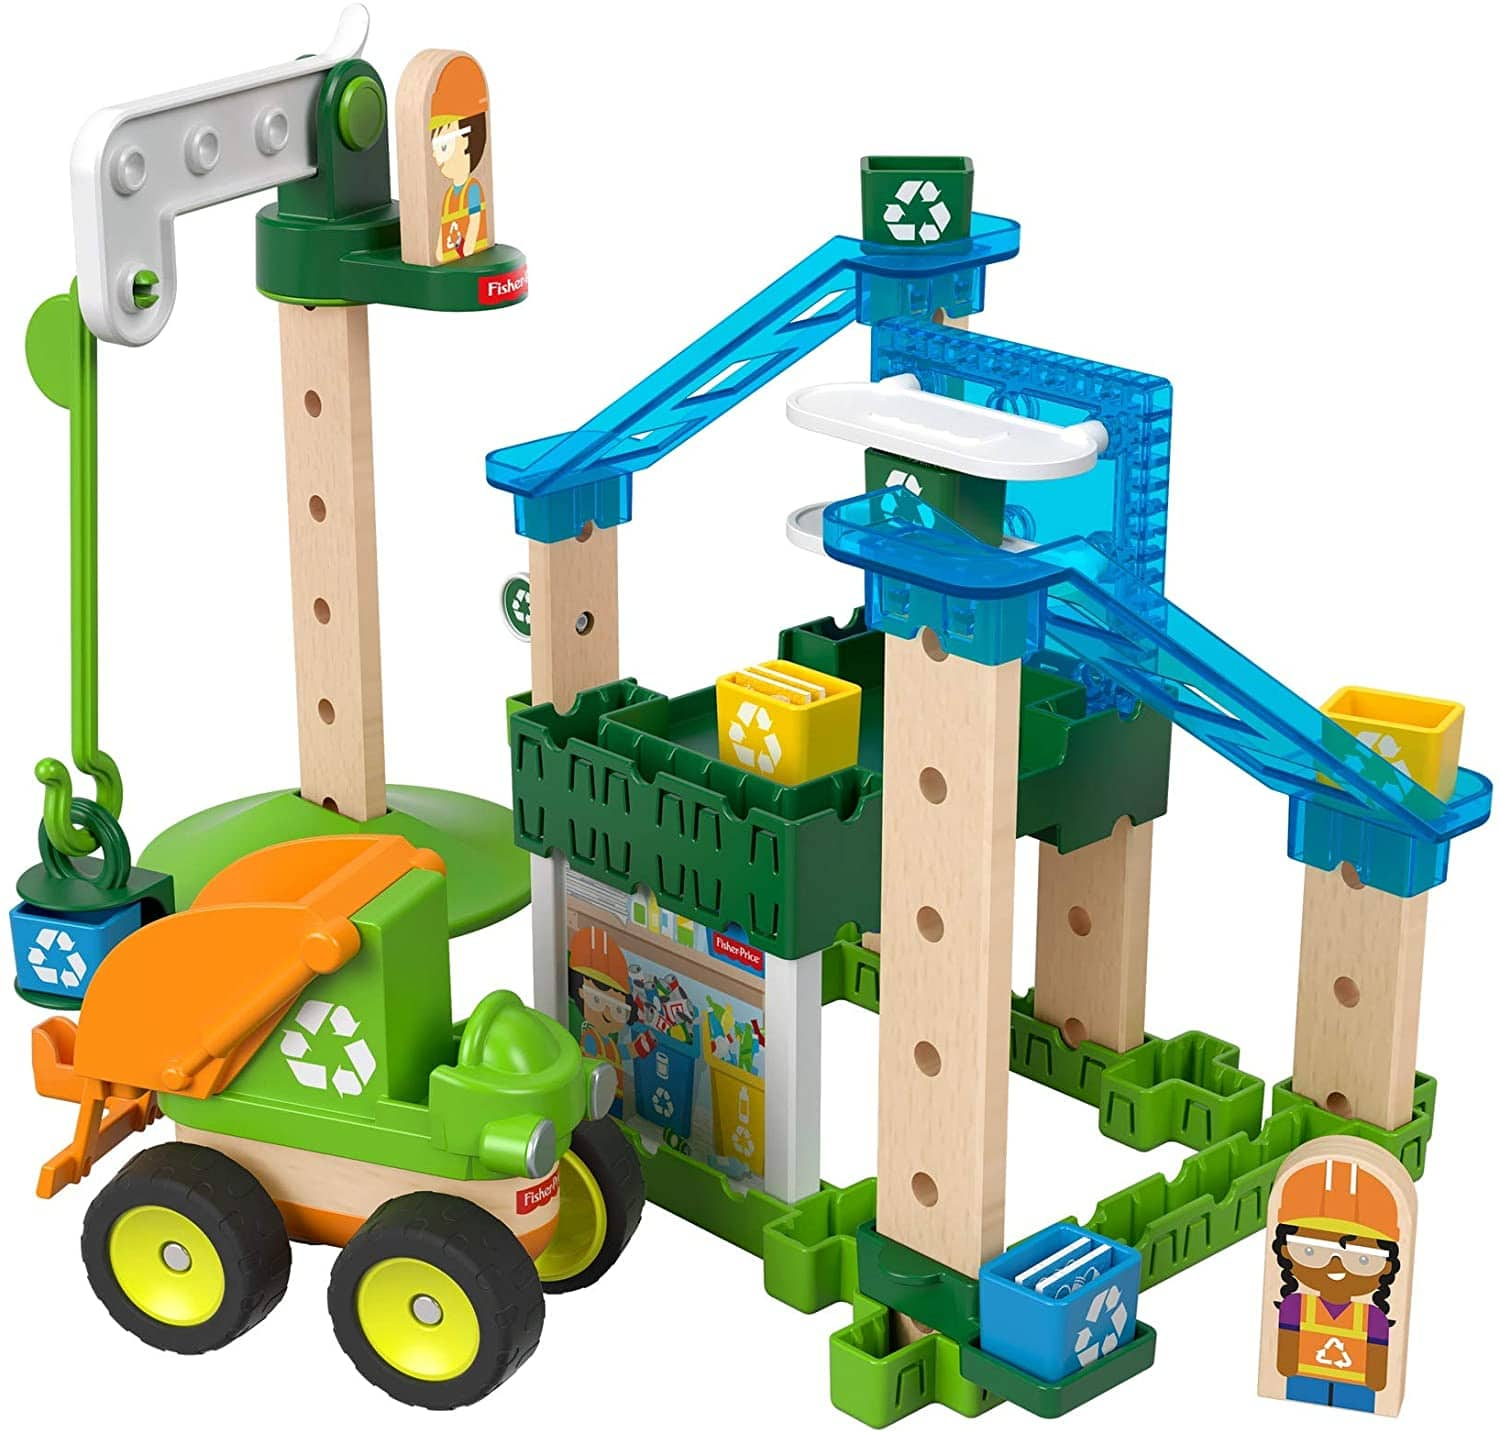 Fisher-Price 35-Pc Wonder Makers Design System Sets: Special Delivery Depot $6.46 + FS w/ Prime or on orders $25+